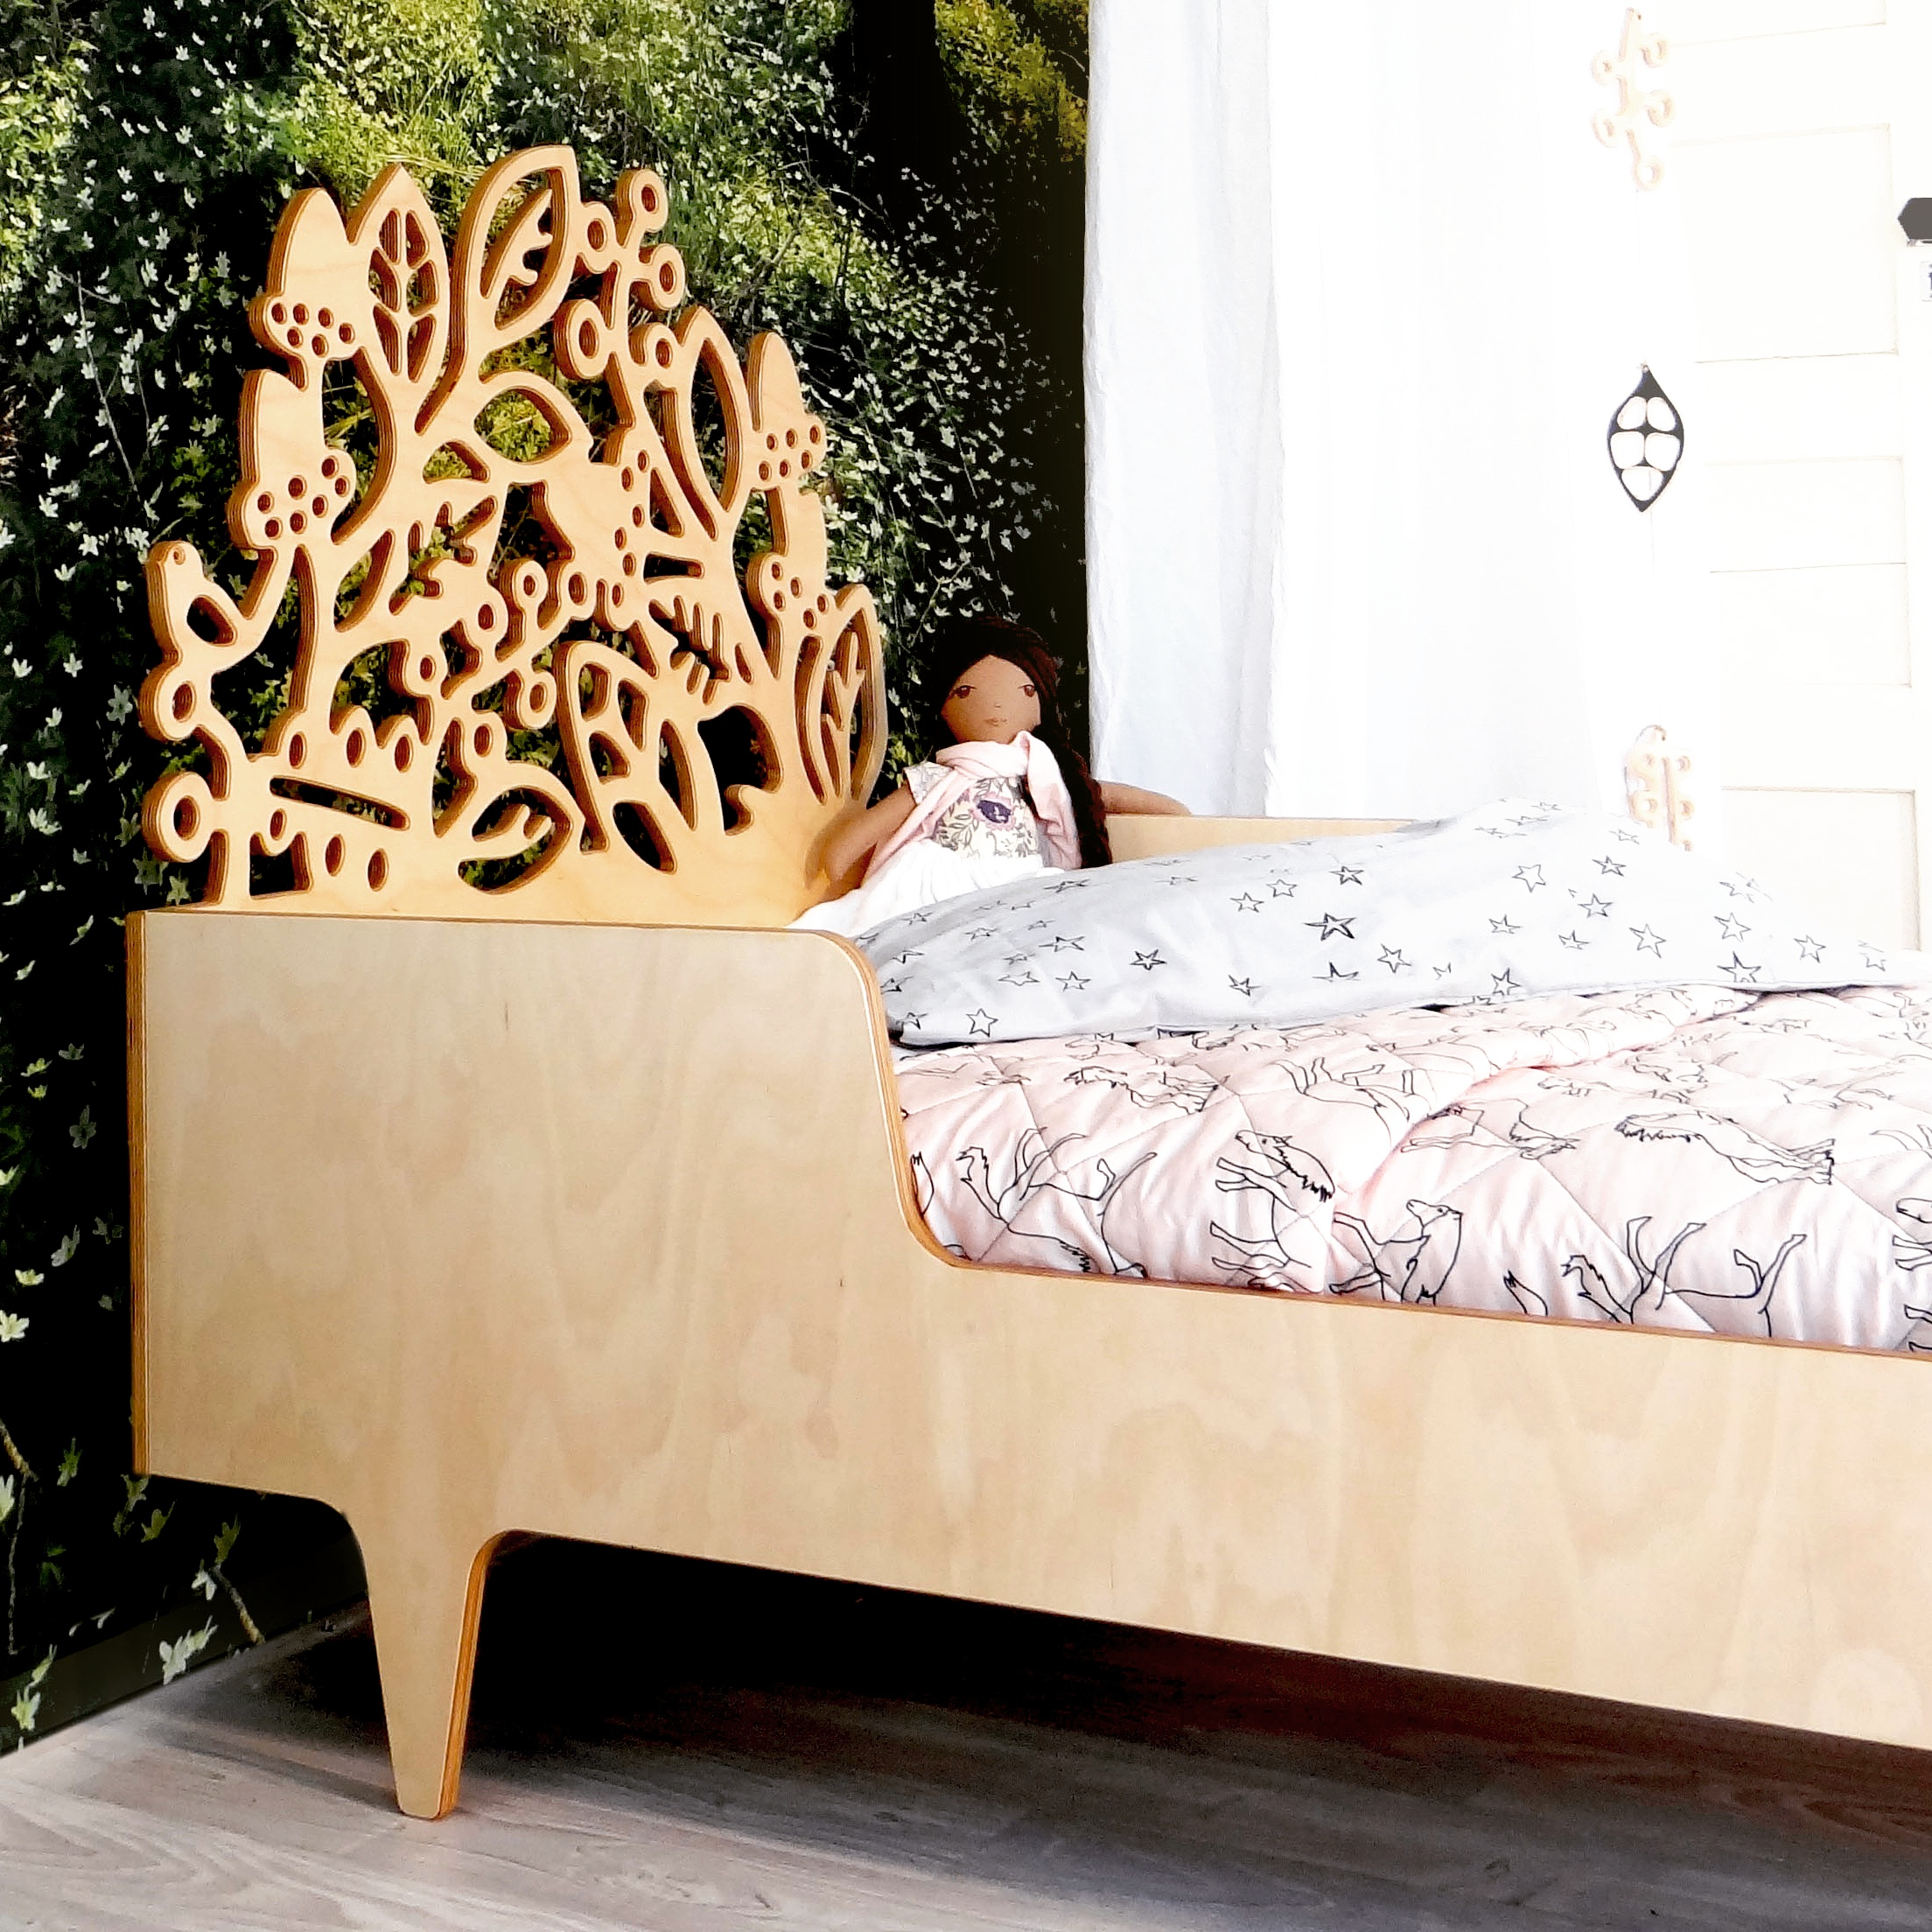 Kids Bed, Kids Beds, Toddler Bed Kids Bedroom Furniture, Childrens Beds,  Childrens